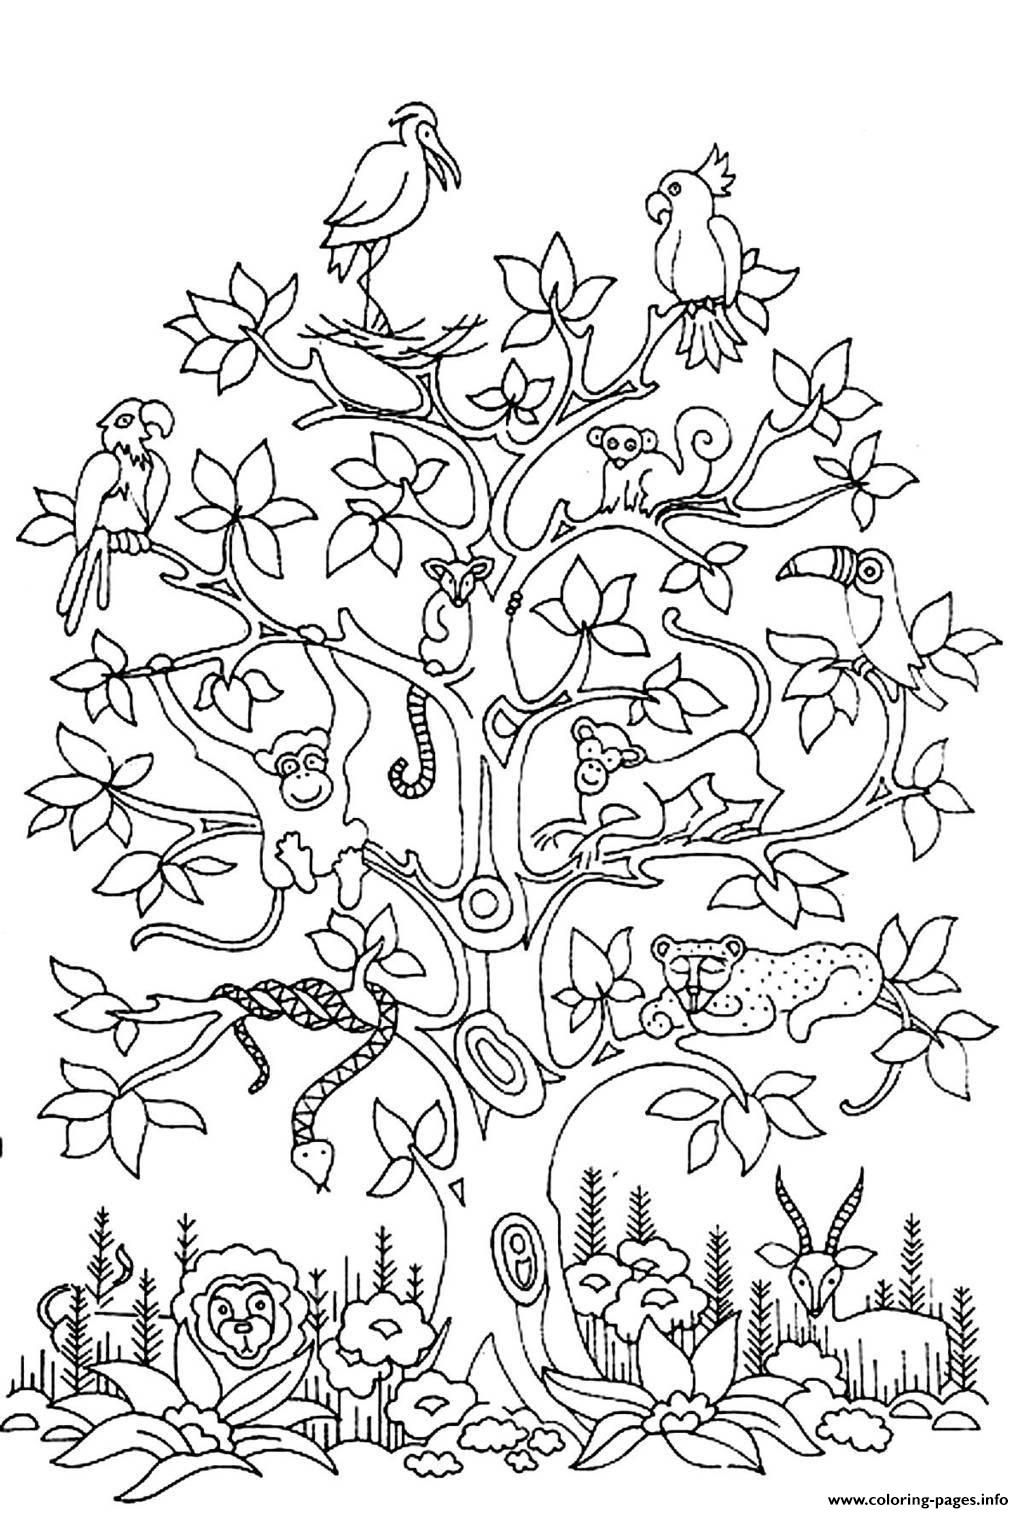 Print adult difficult tree bird butterflies snake monkey Coloring ...